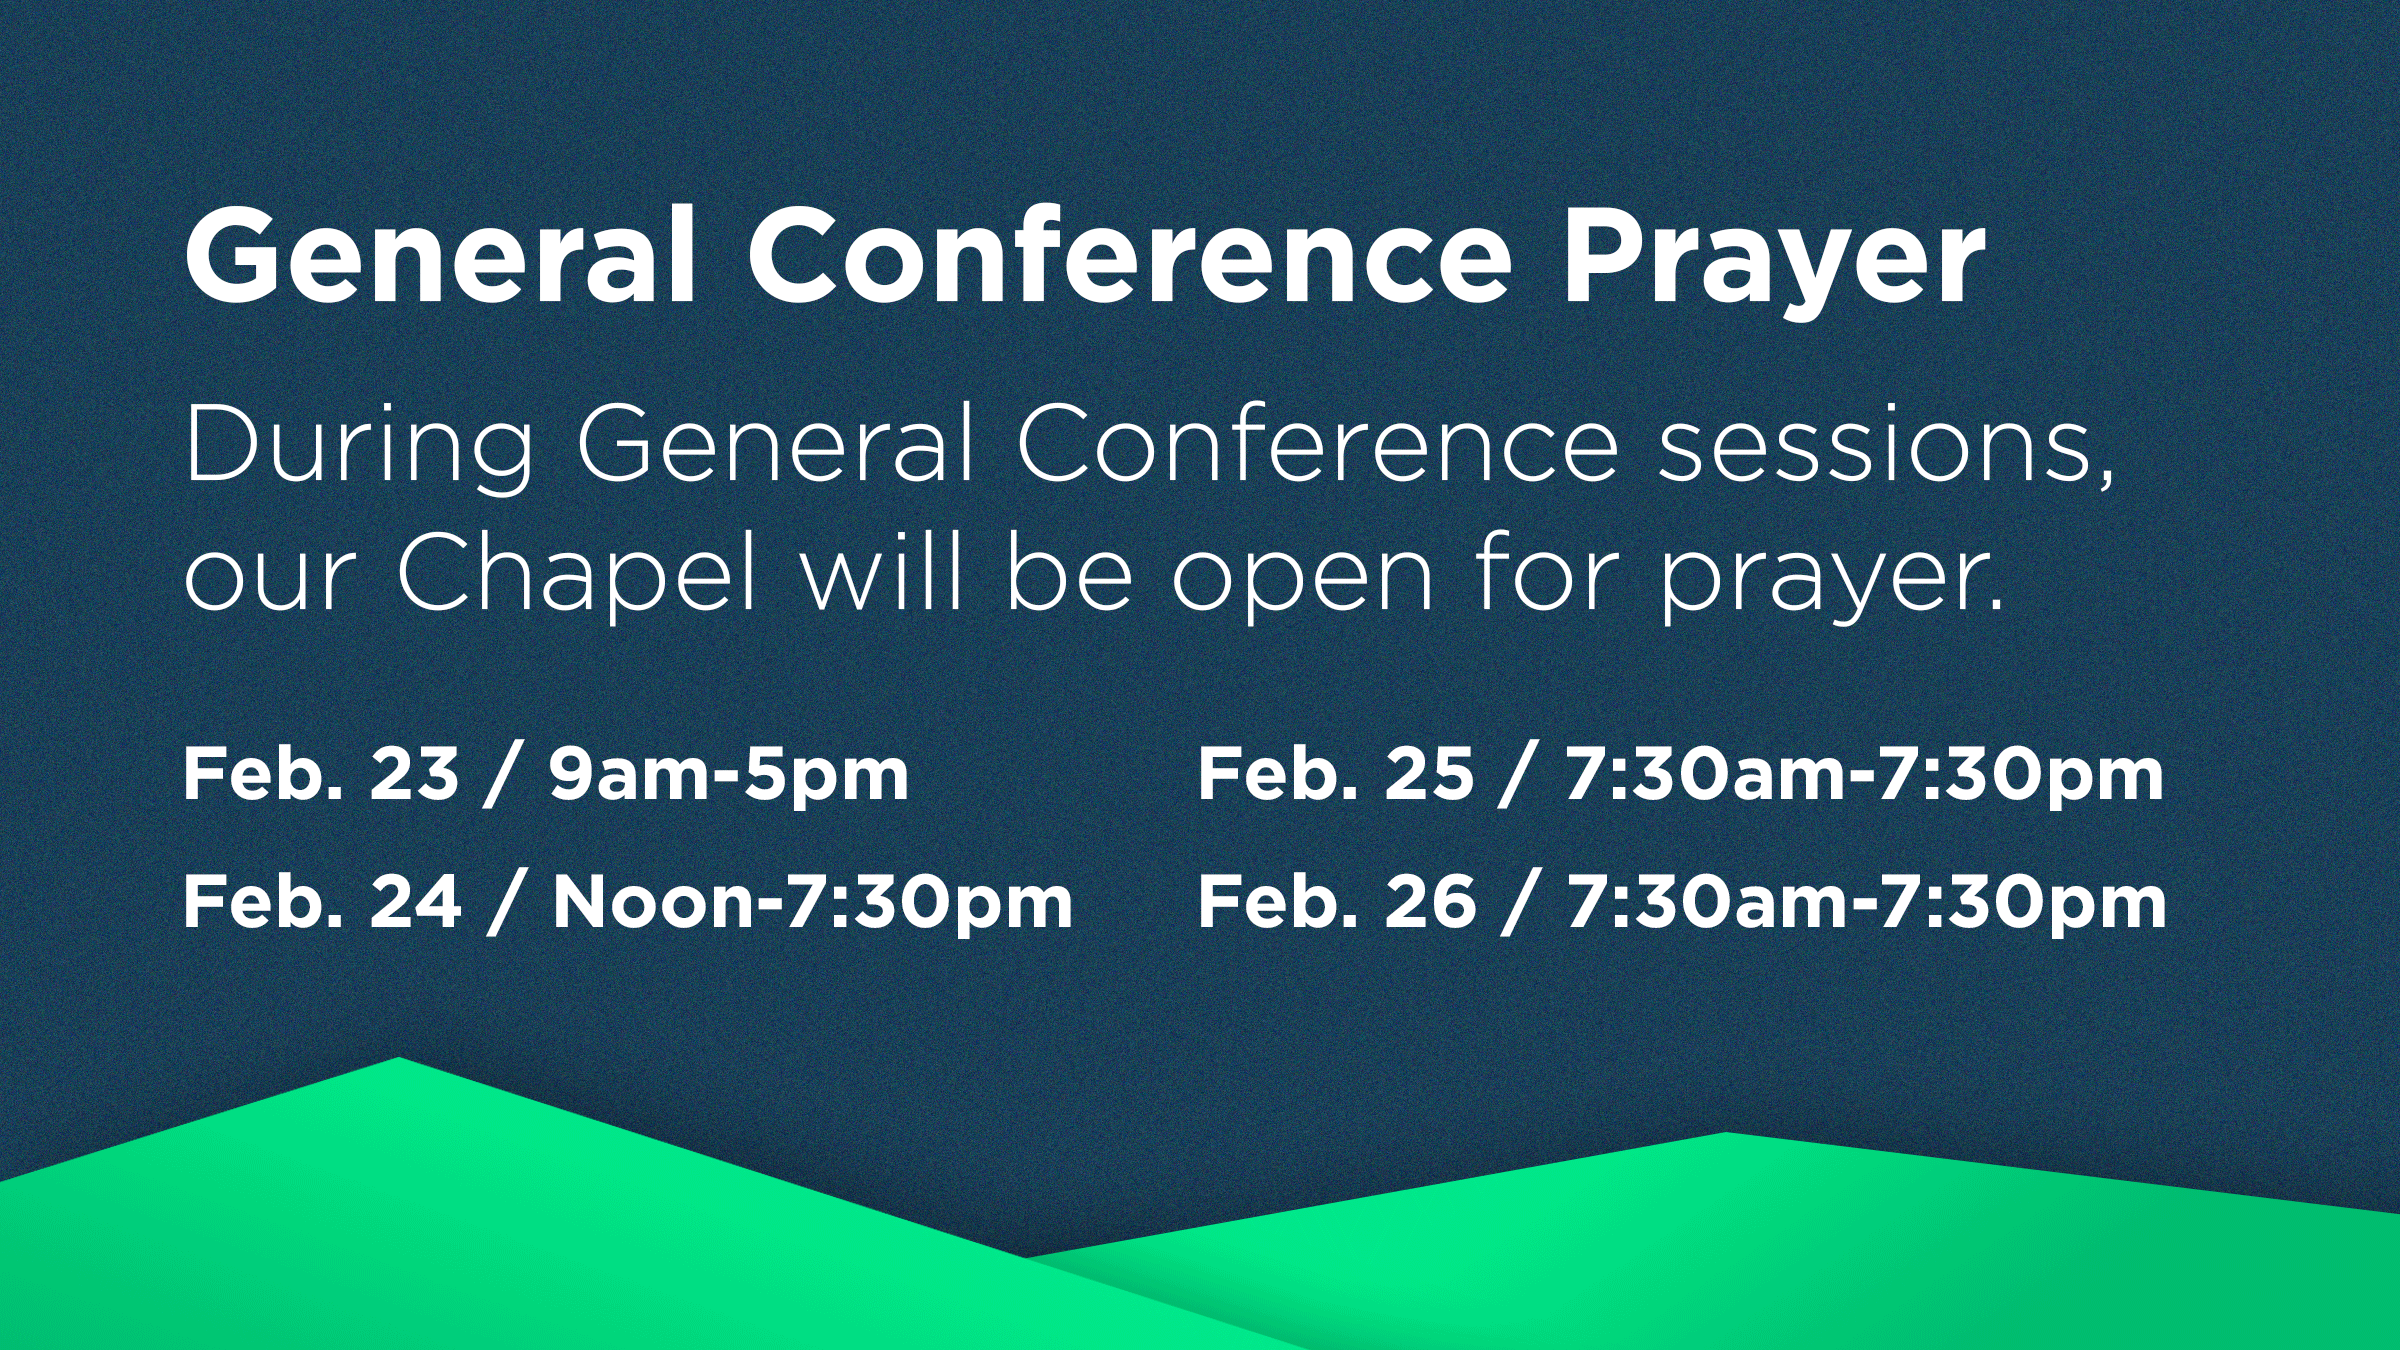 screen_general_conference_prayer_2019.png